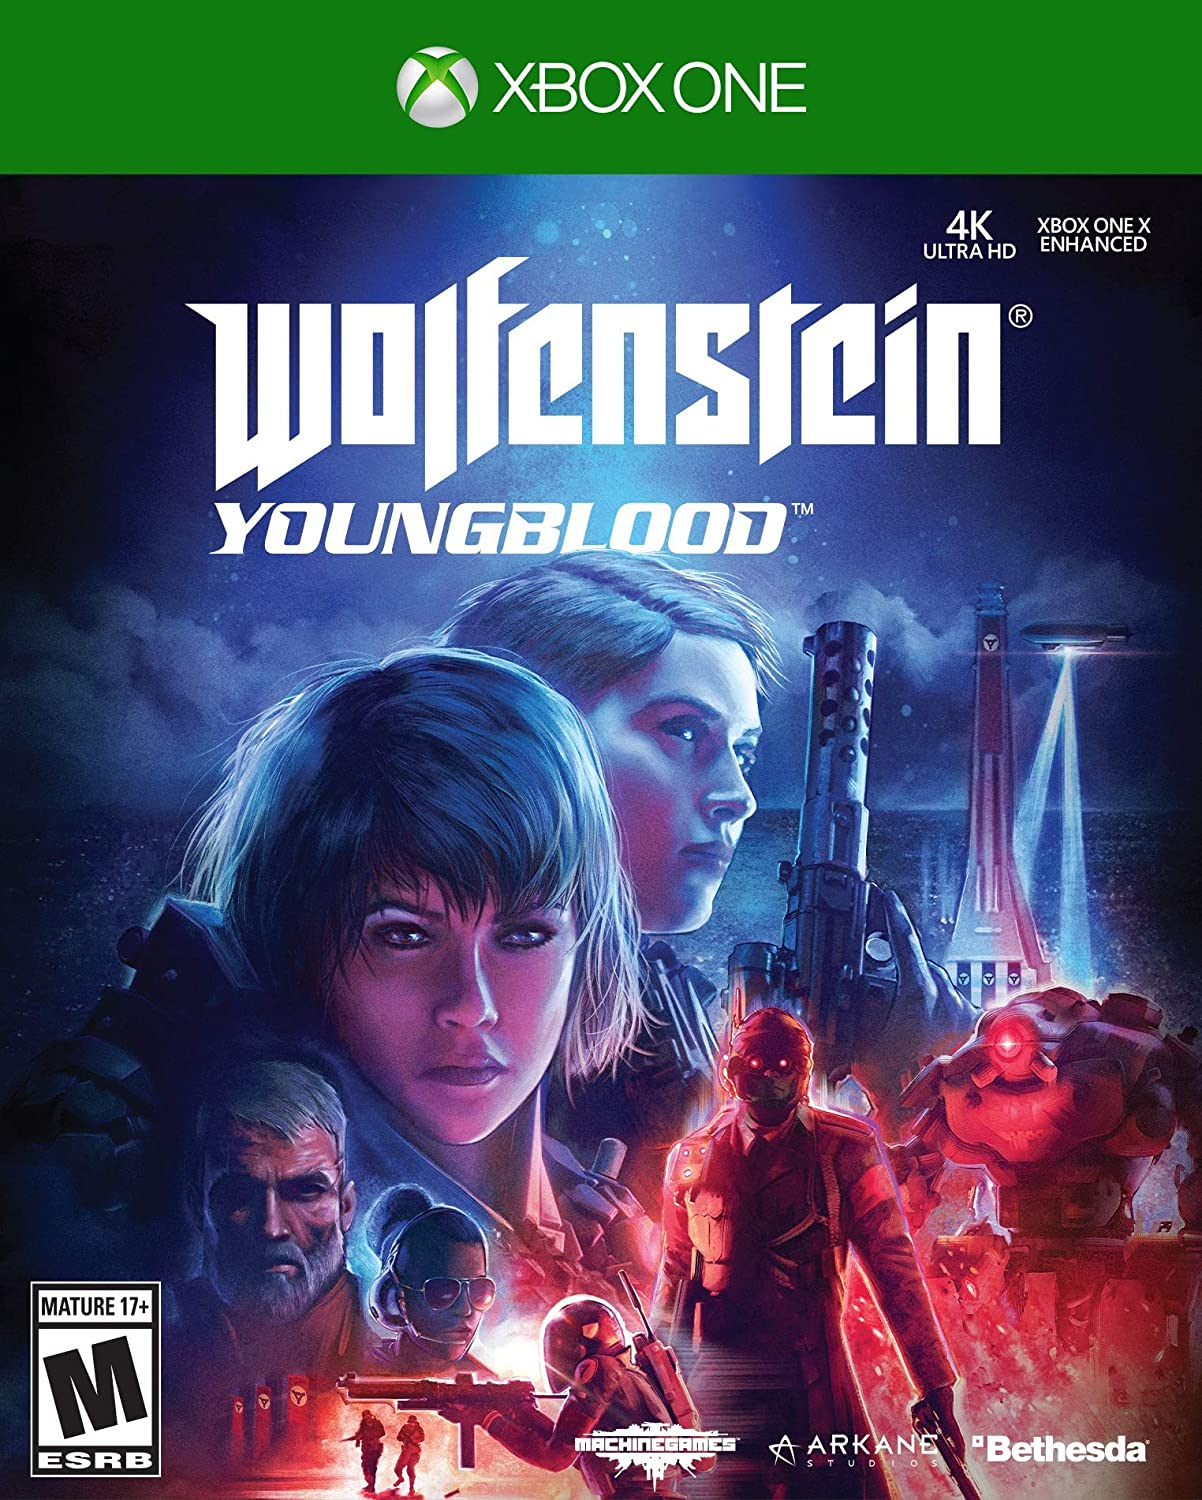 Microsoft Wolfenstein: Youngblood vídeo - Juego (Xbox One, Shooter, T (Teen)): Amazon.es: Videojuegos